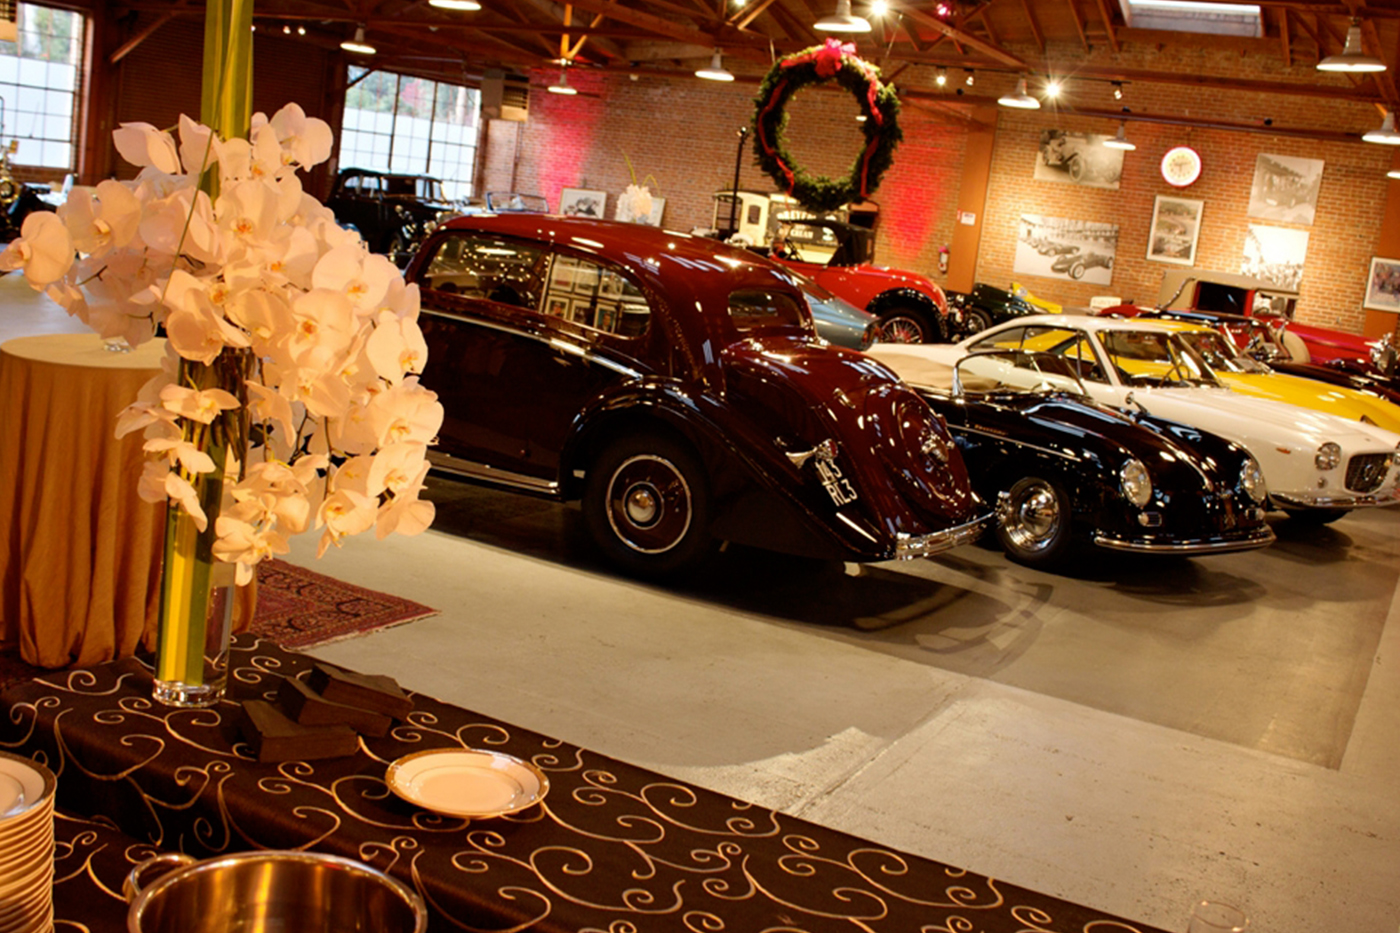 Candy Store Events Local Bay Area Caterer Venues - Bay area car show events